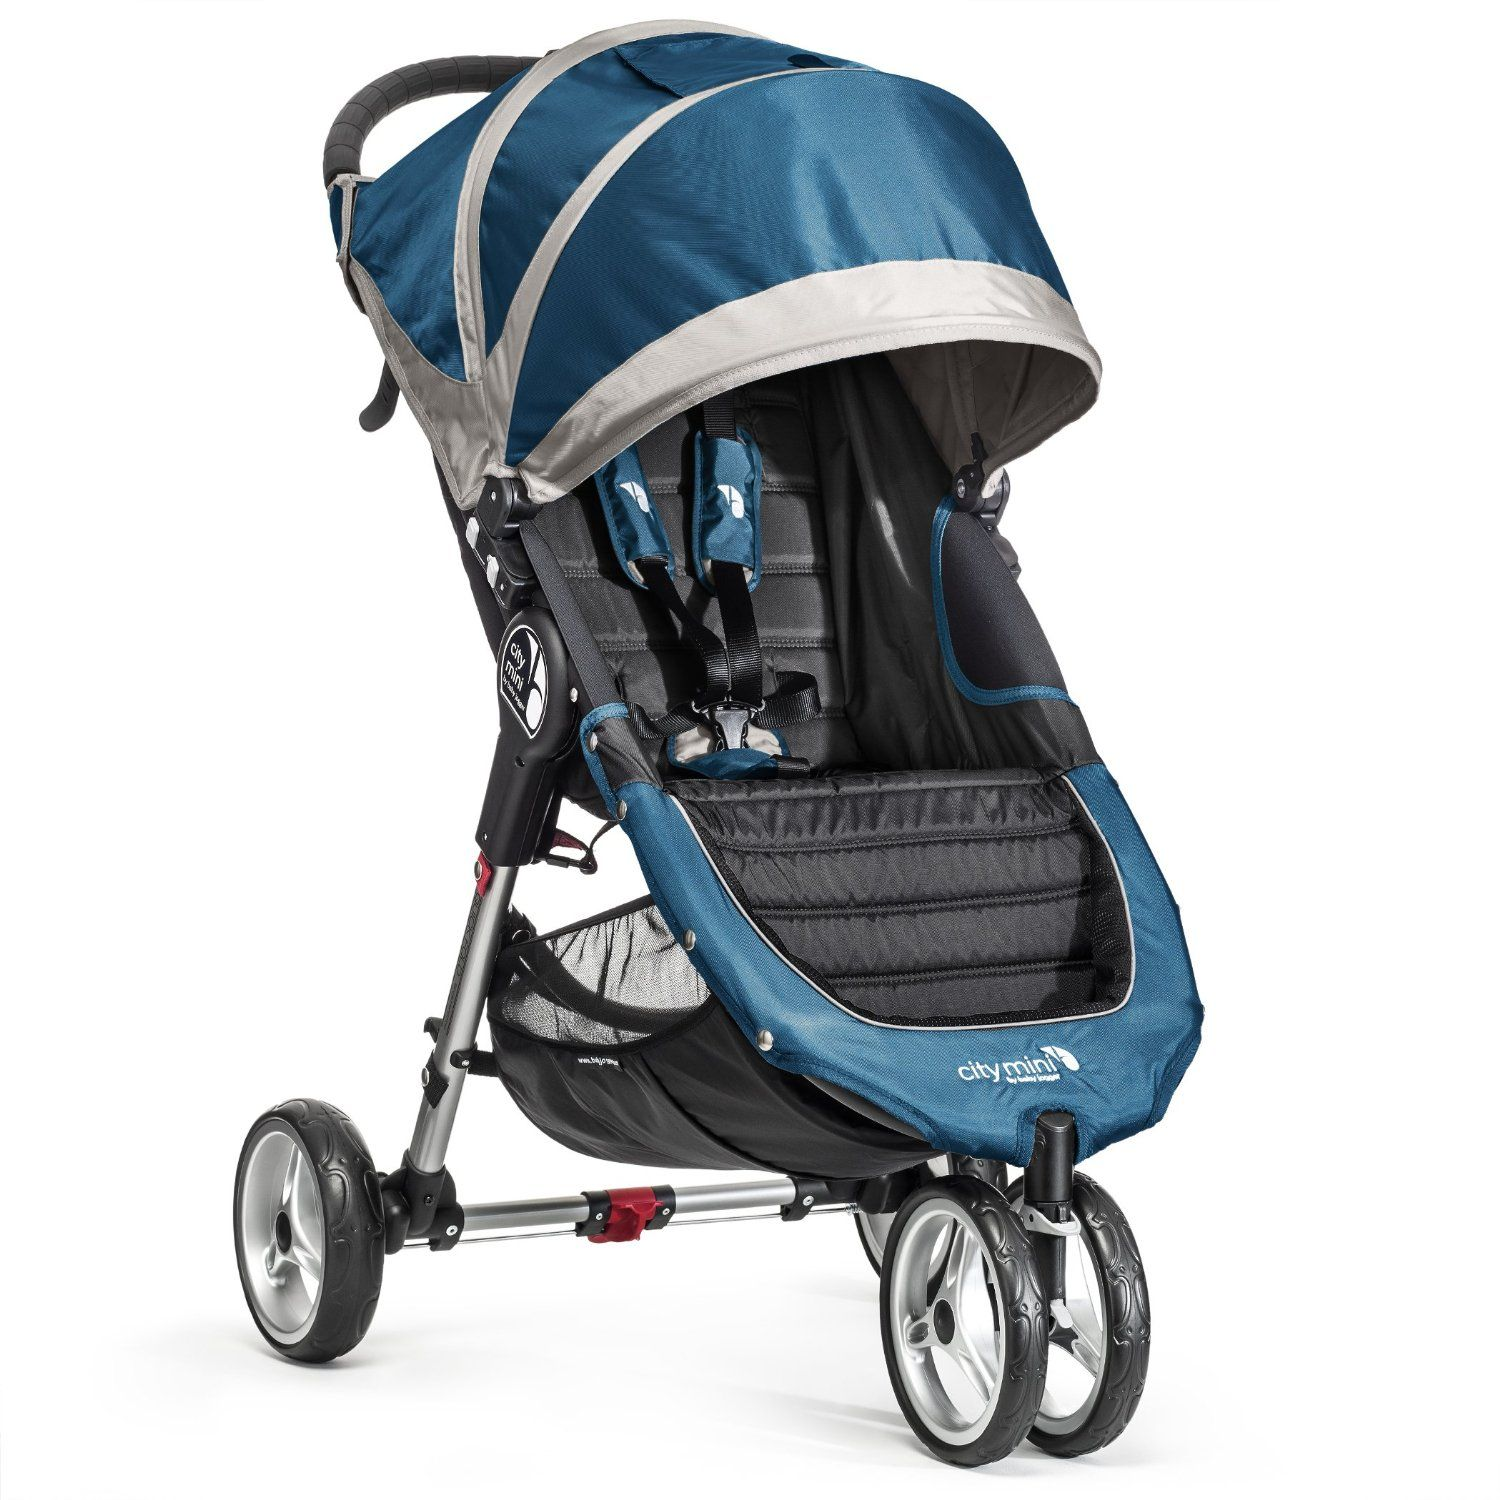 We love our City Mini Stroller reclines to flat so that